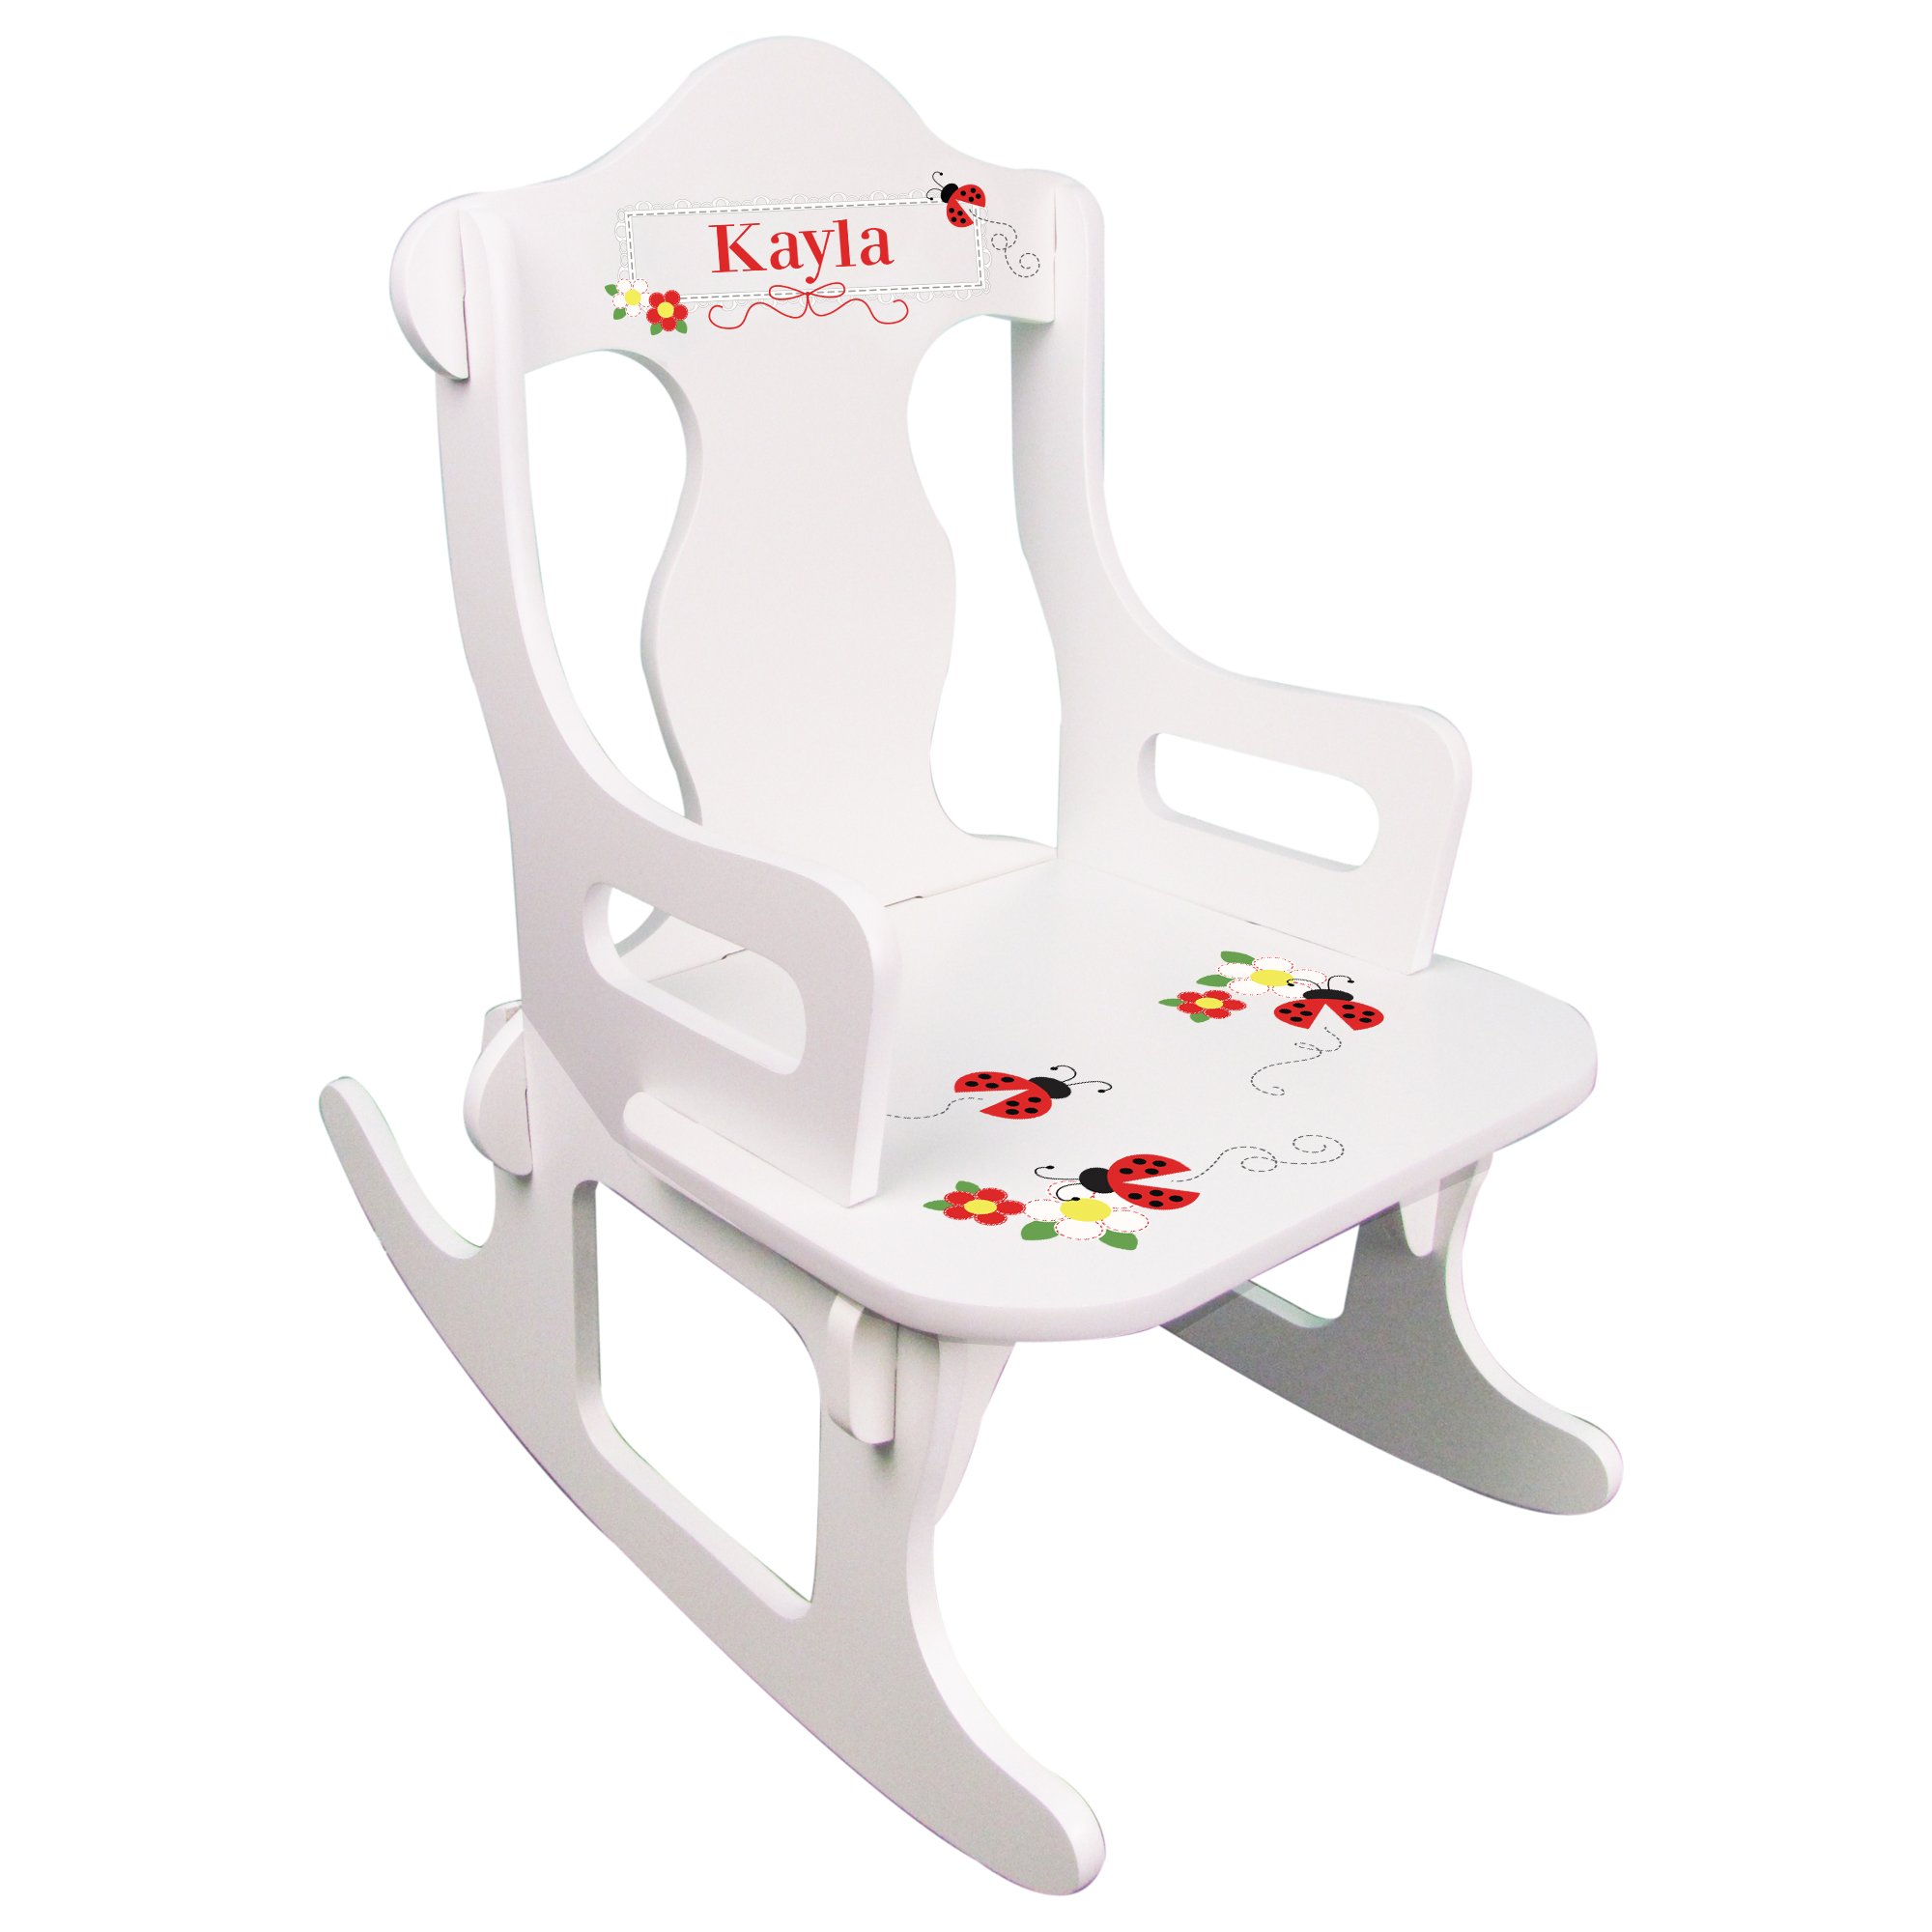 Personalized Child's Red Ladybug Puzzle Rocking Chair